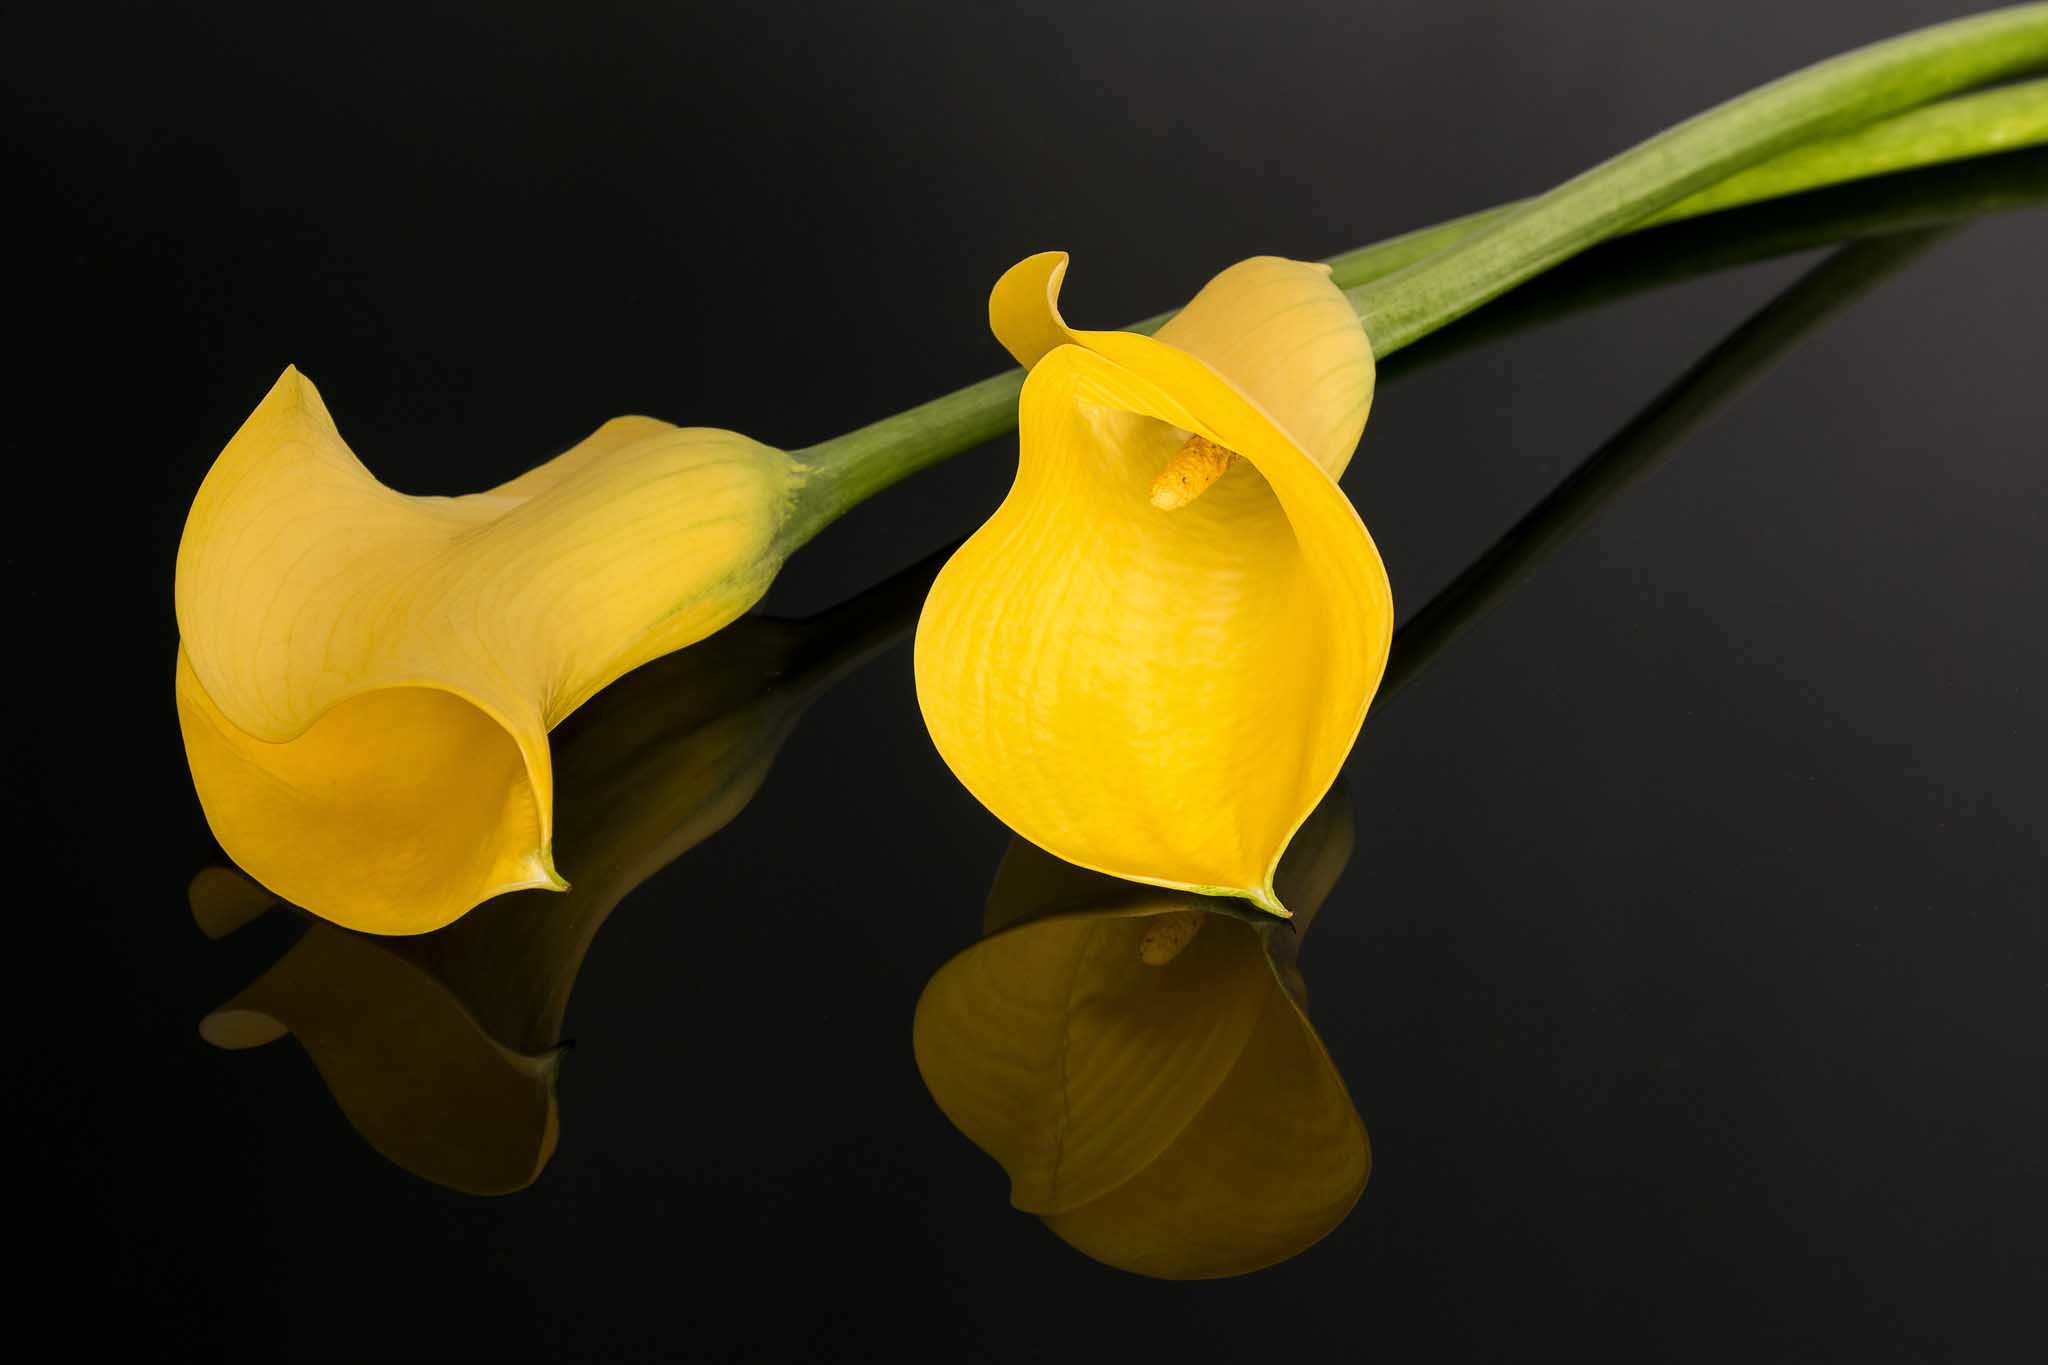 2048x1365 calla lily flower hd wallpapers